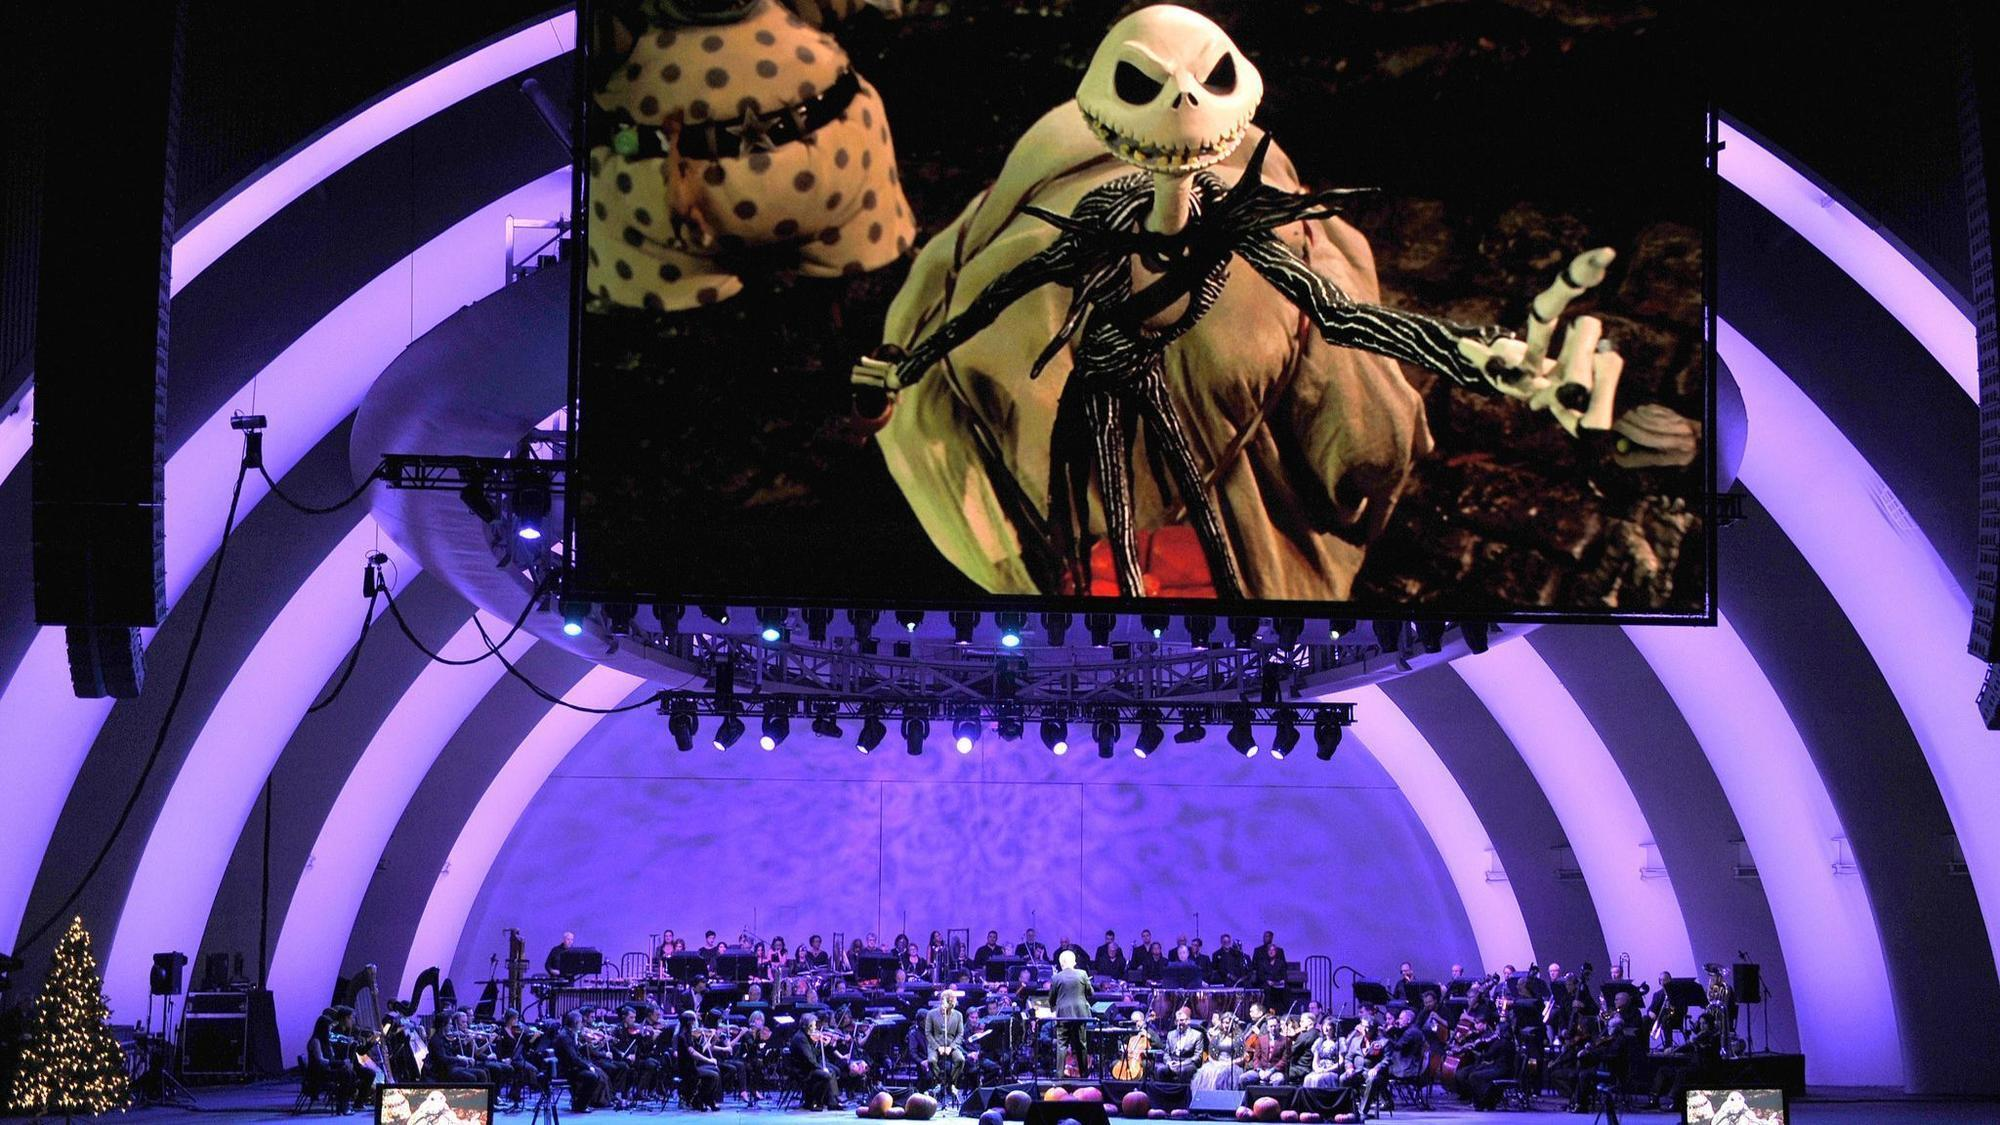 See \'Nightmare Before Christmas\' with a live orchestra performance ...